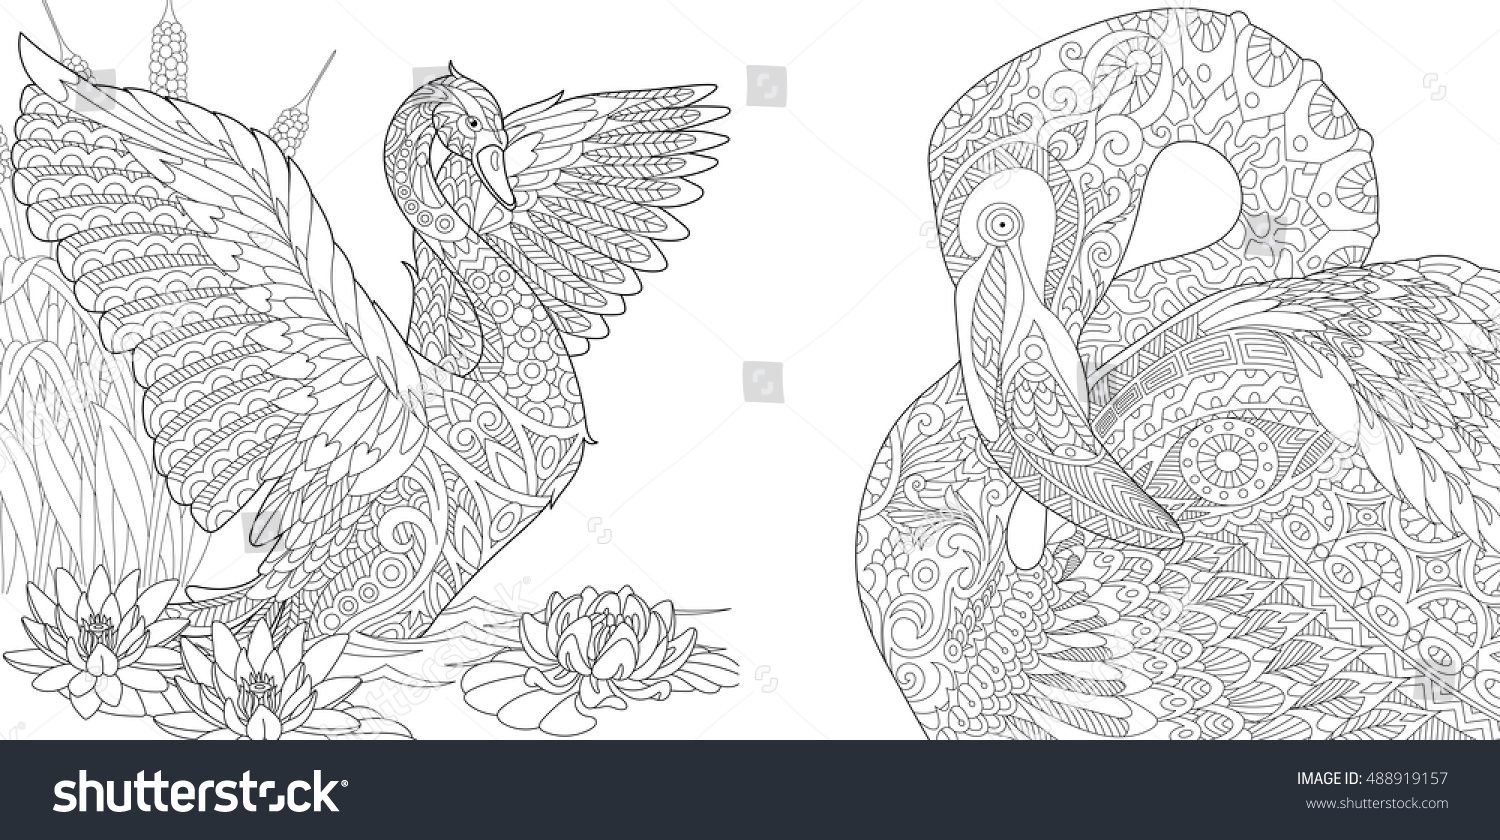 Water lily flower coloring pages - Stylized Two Beautiful Birds Swan Among Water Lilies Lotus Flowers And Flamingo